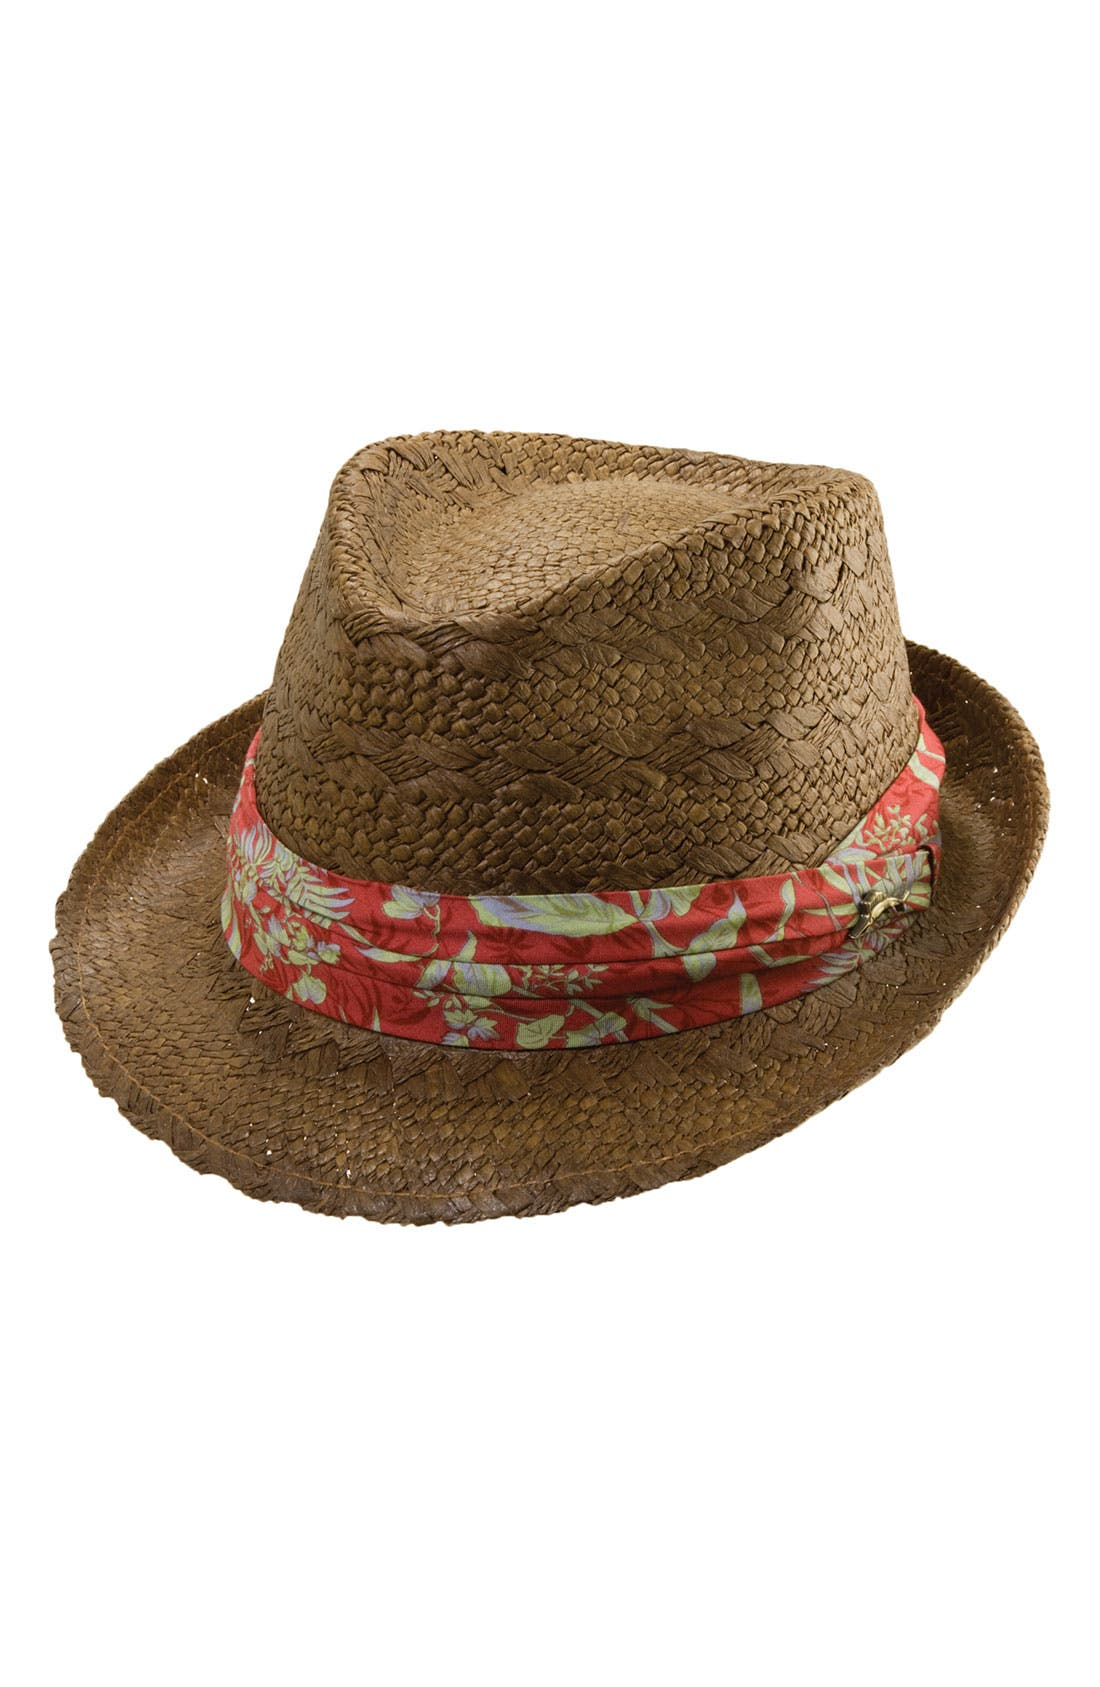 Alternate Image 1 Selected - Tommy Bahama Toyo Straw Fedora